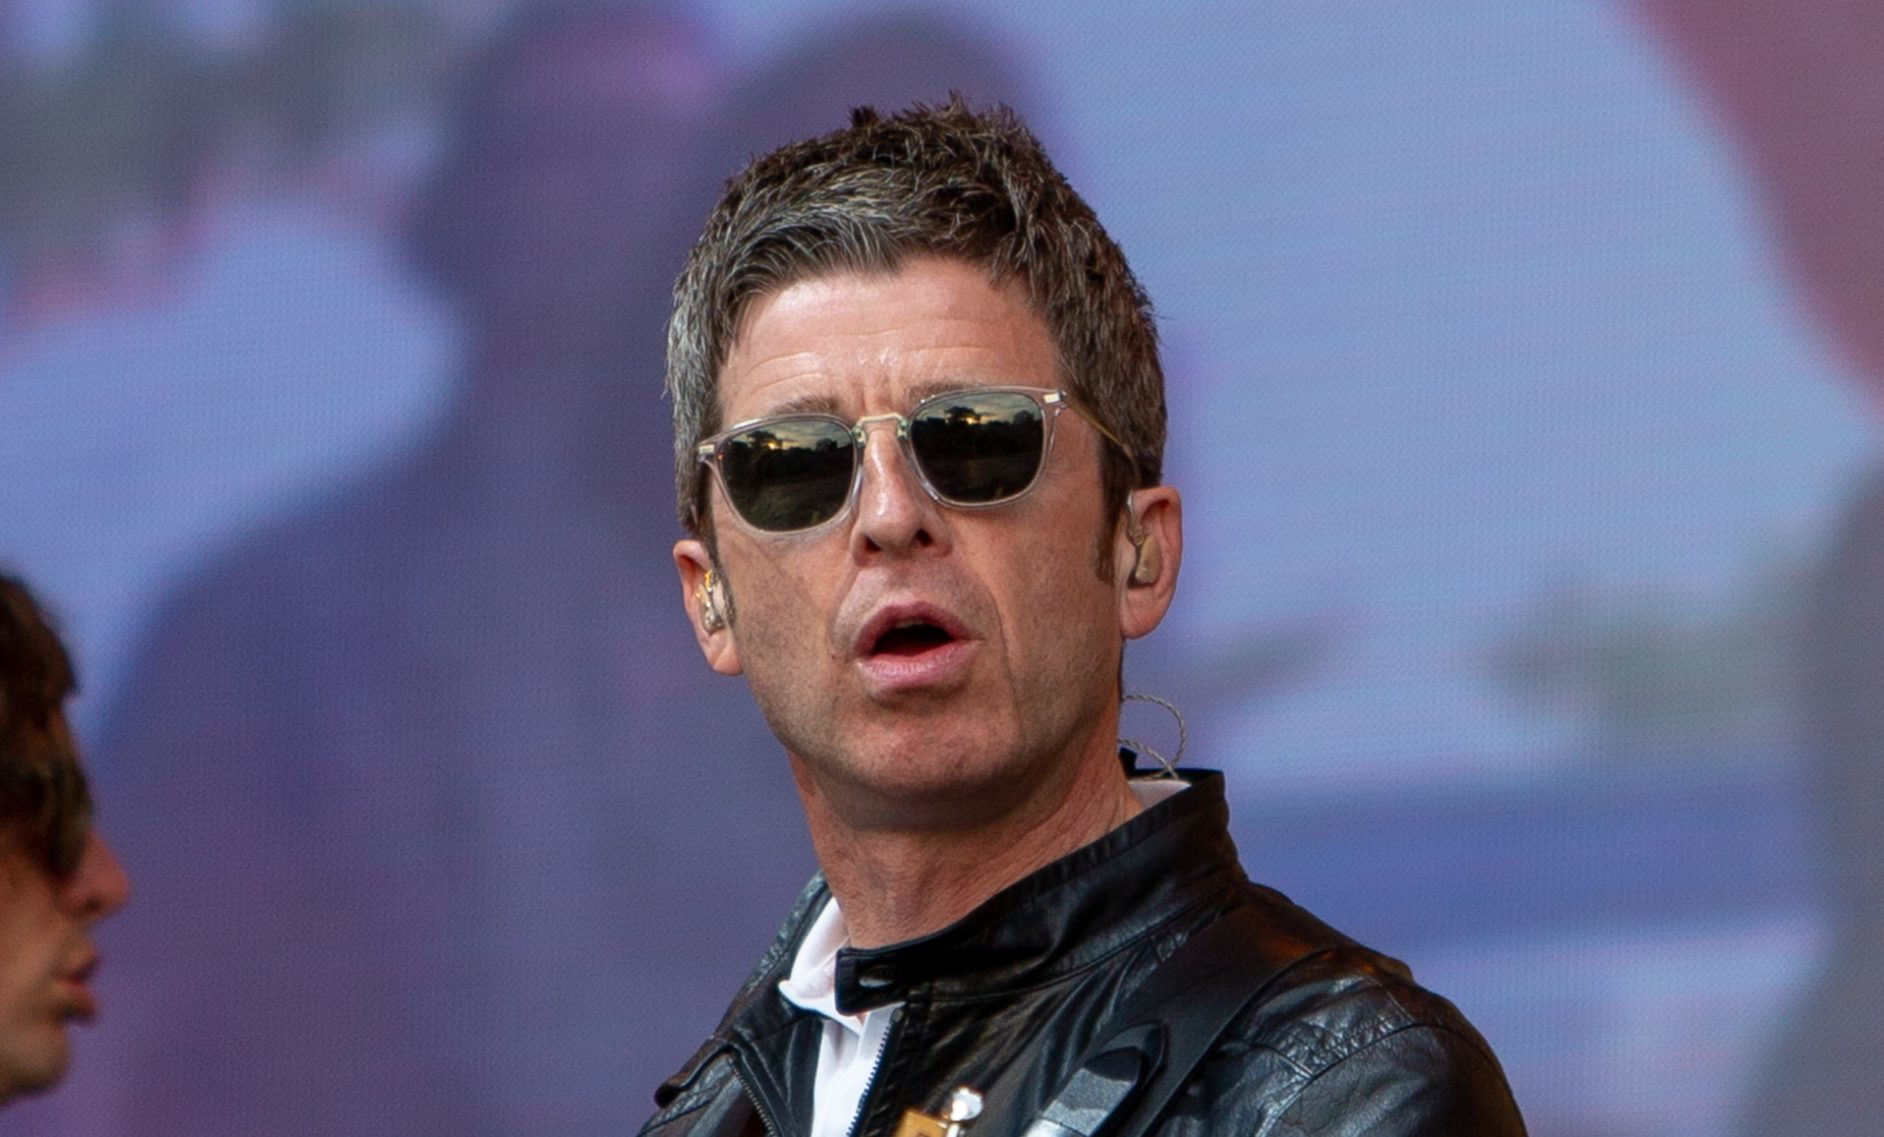 Noel Gallagher & High Flying Birds headlined at the event